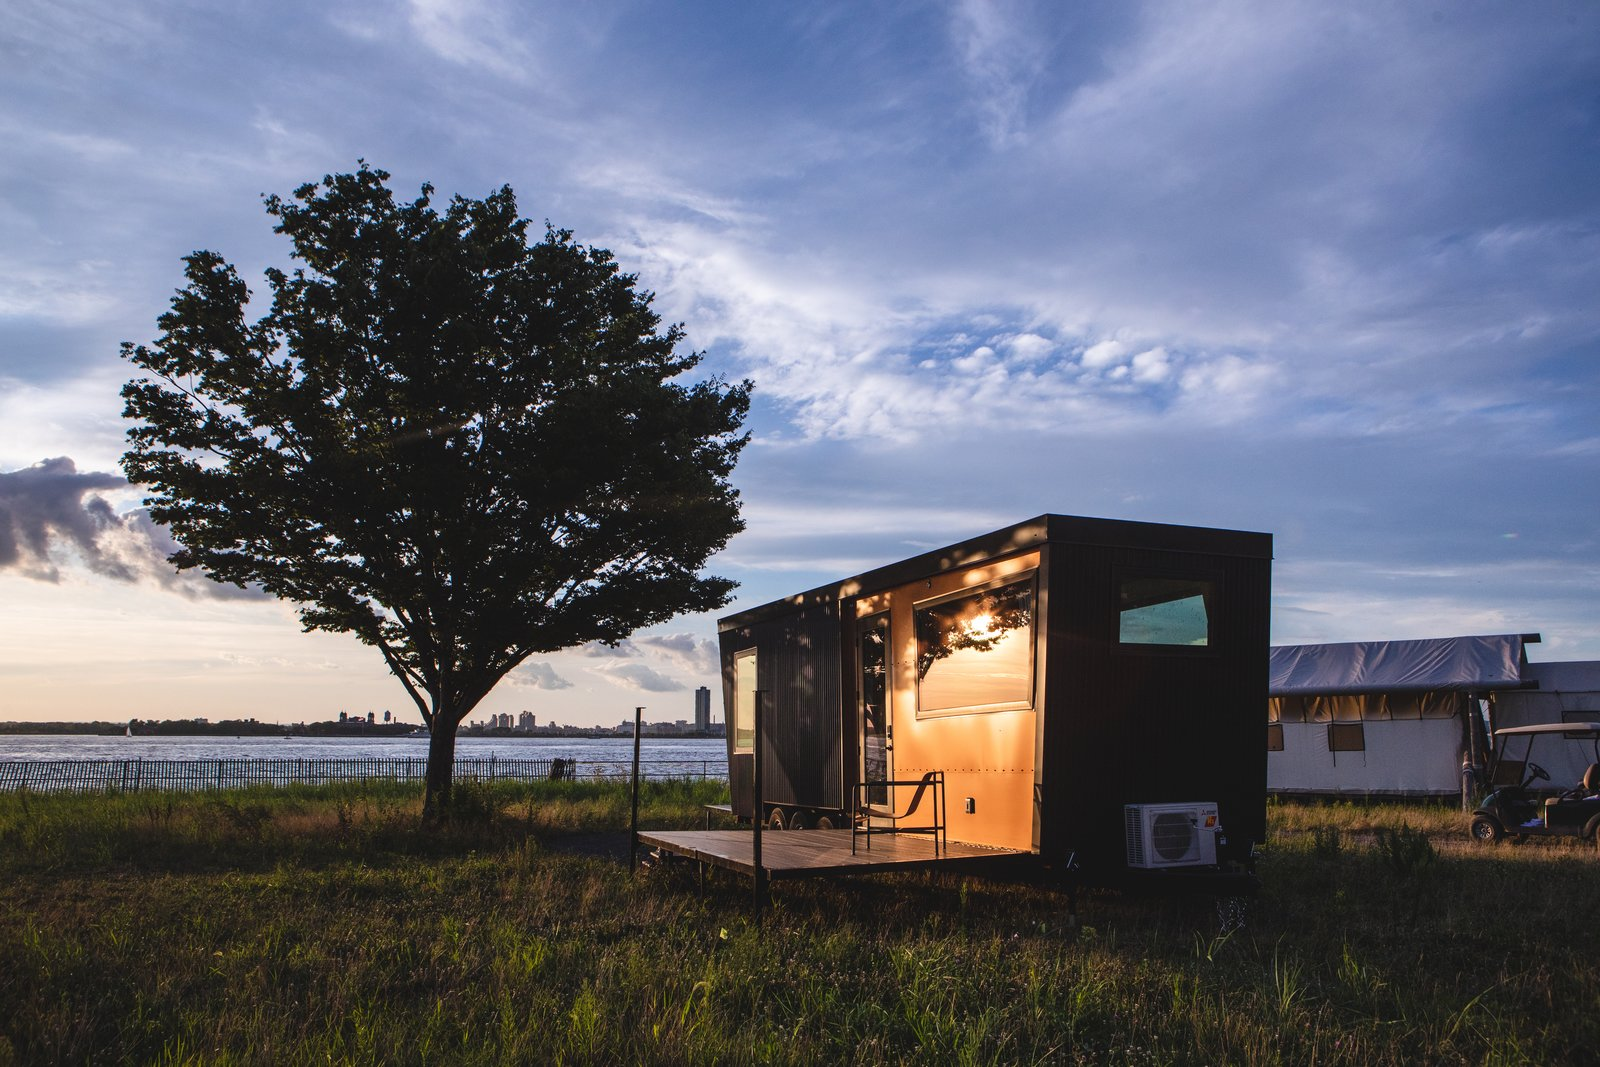 """Outlook Shelter epitomizes rugged luxury. """"All our features and innovations are integrated in one modular unit, so we can move and operate it quickly,"""" says Peter Mack, founder and CEO of Collective Retreats."""